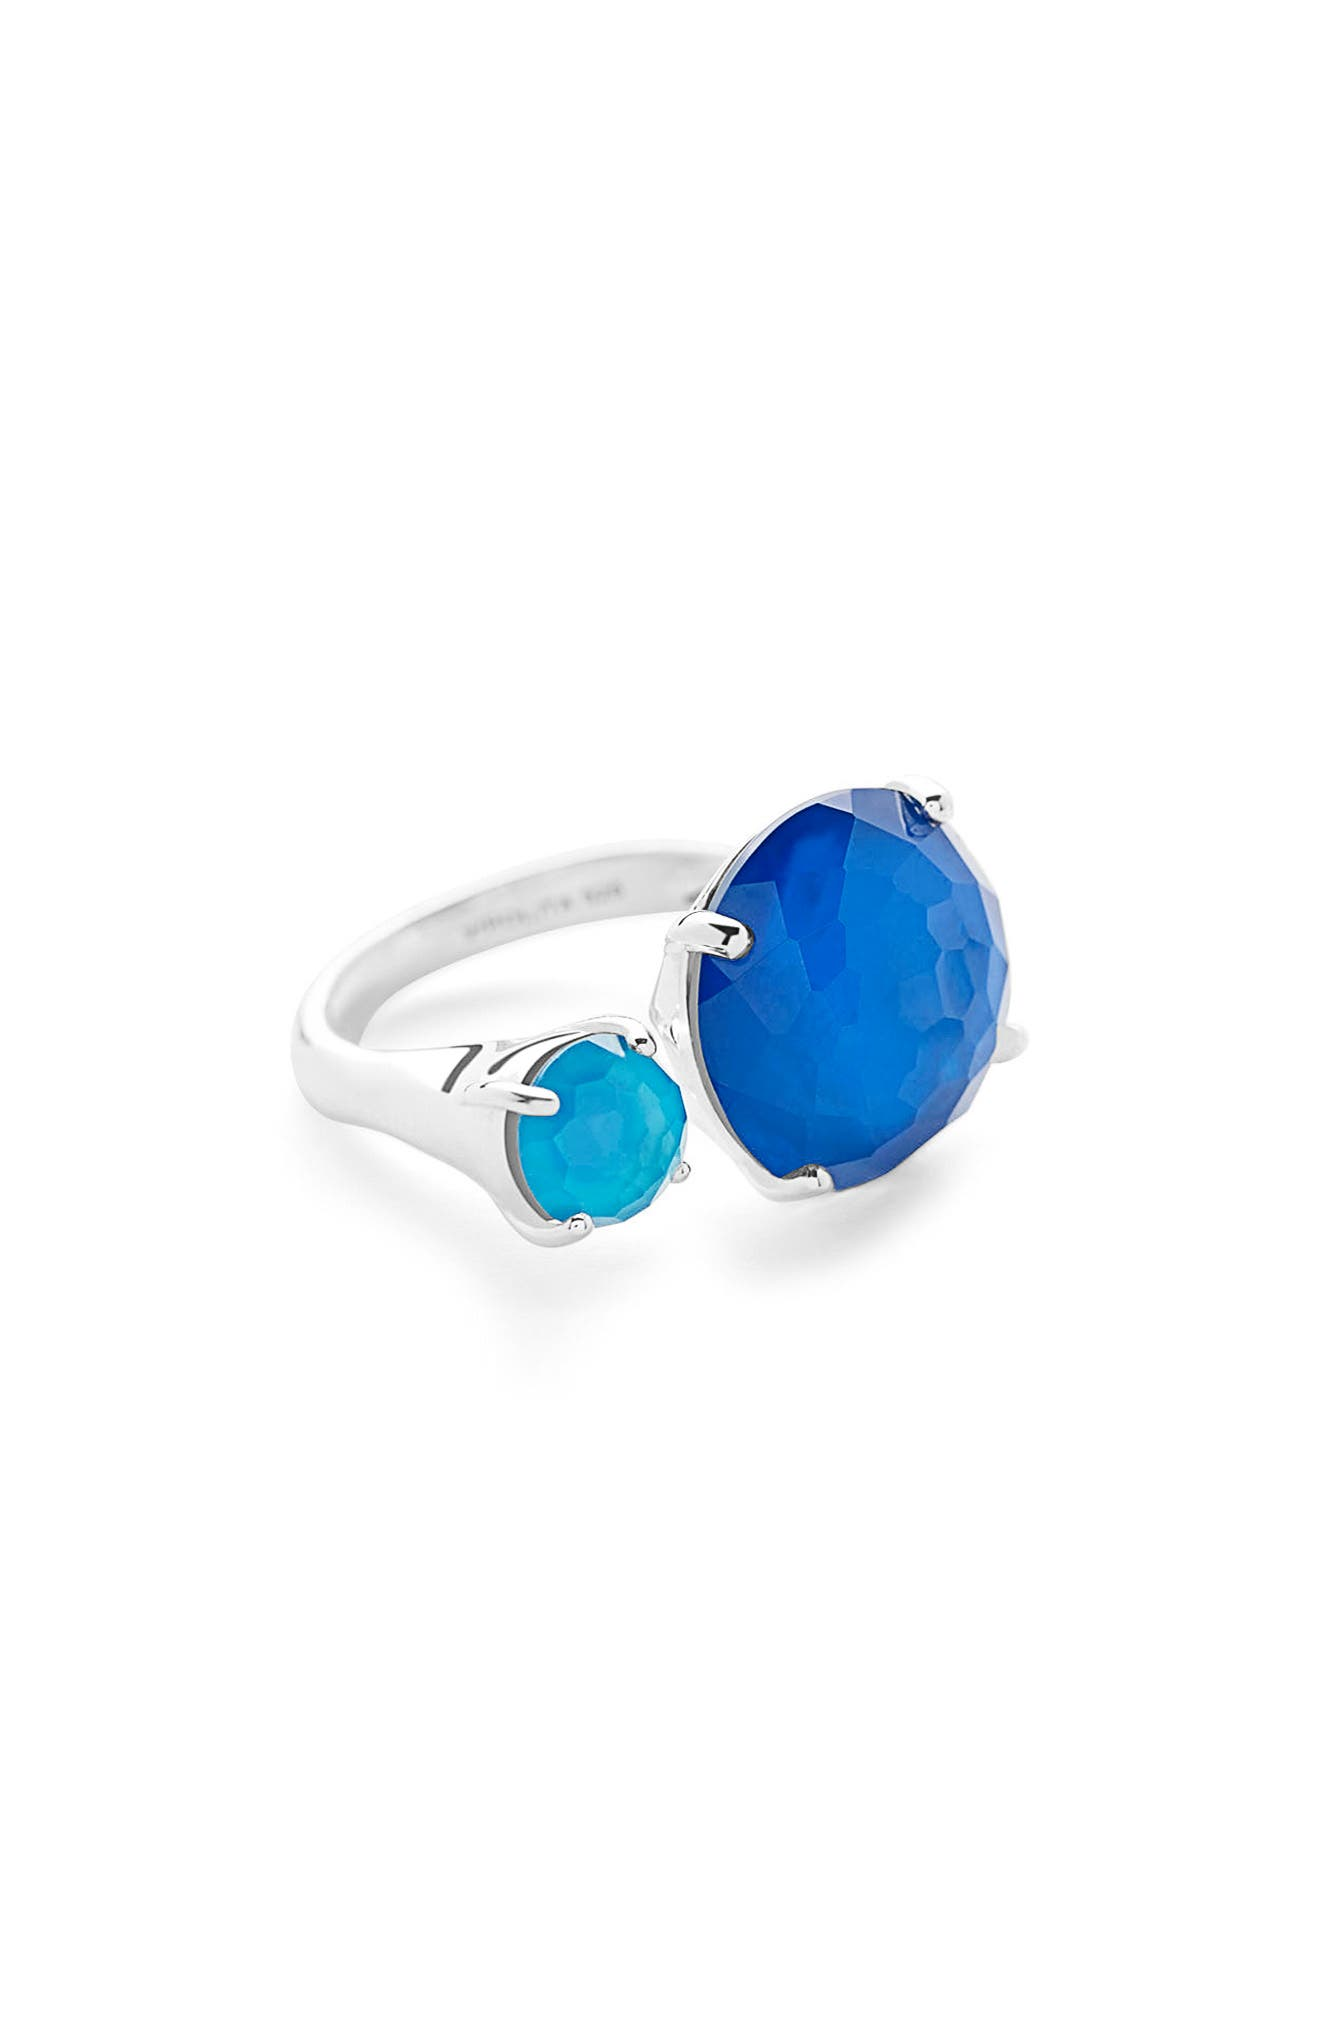 Wonderland Stone Ring,                             Main thumbnail 1, color,